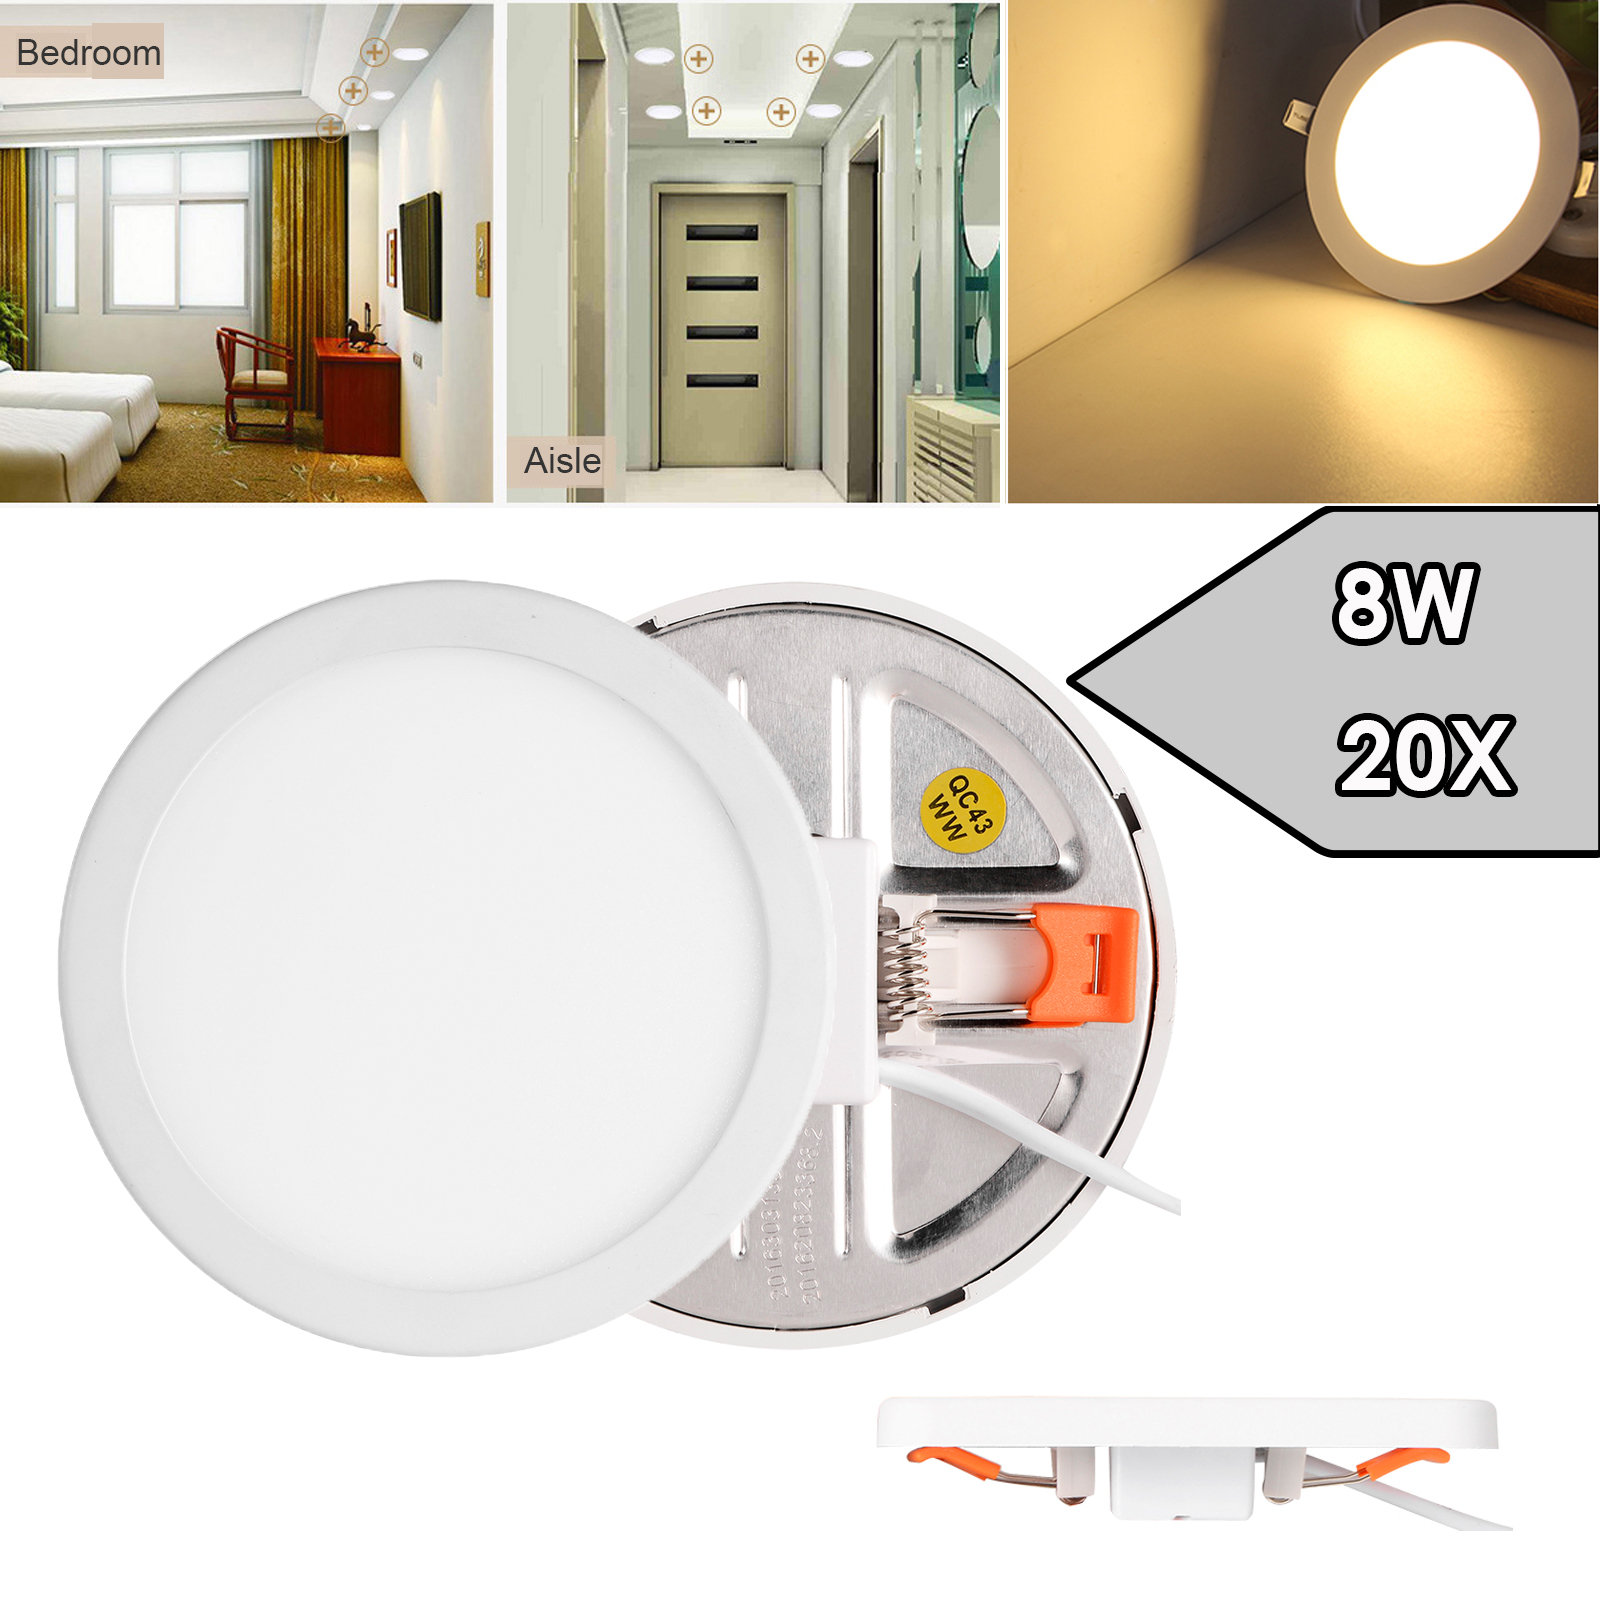 20x 8w Round Led Recessed Ceiling Panel Down Light Free Hole Cut Out Warm White